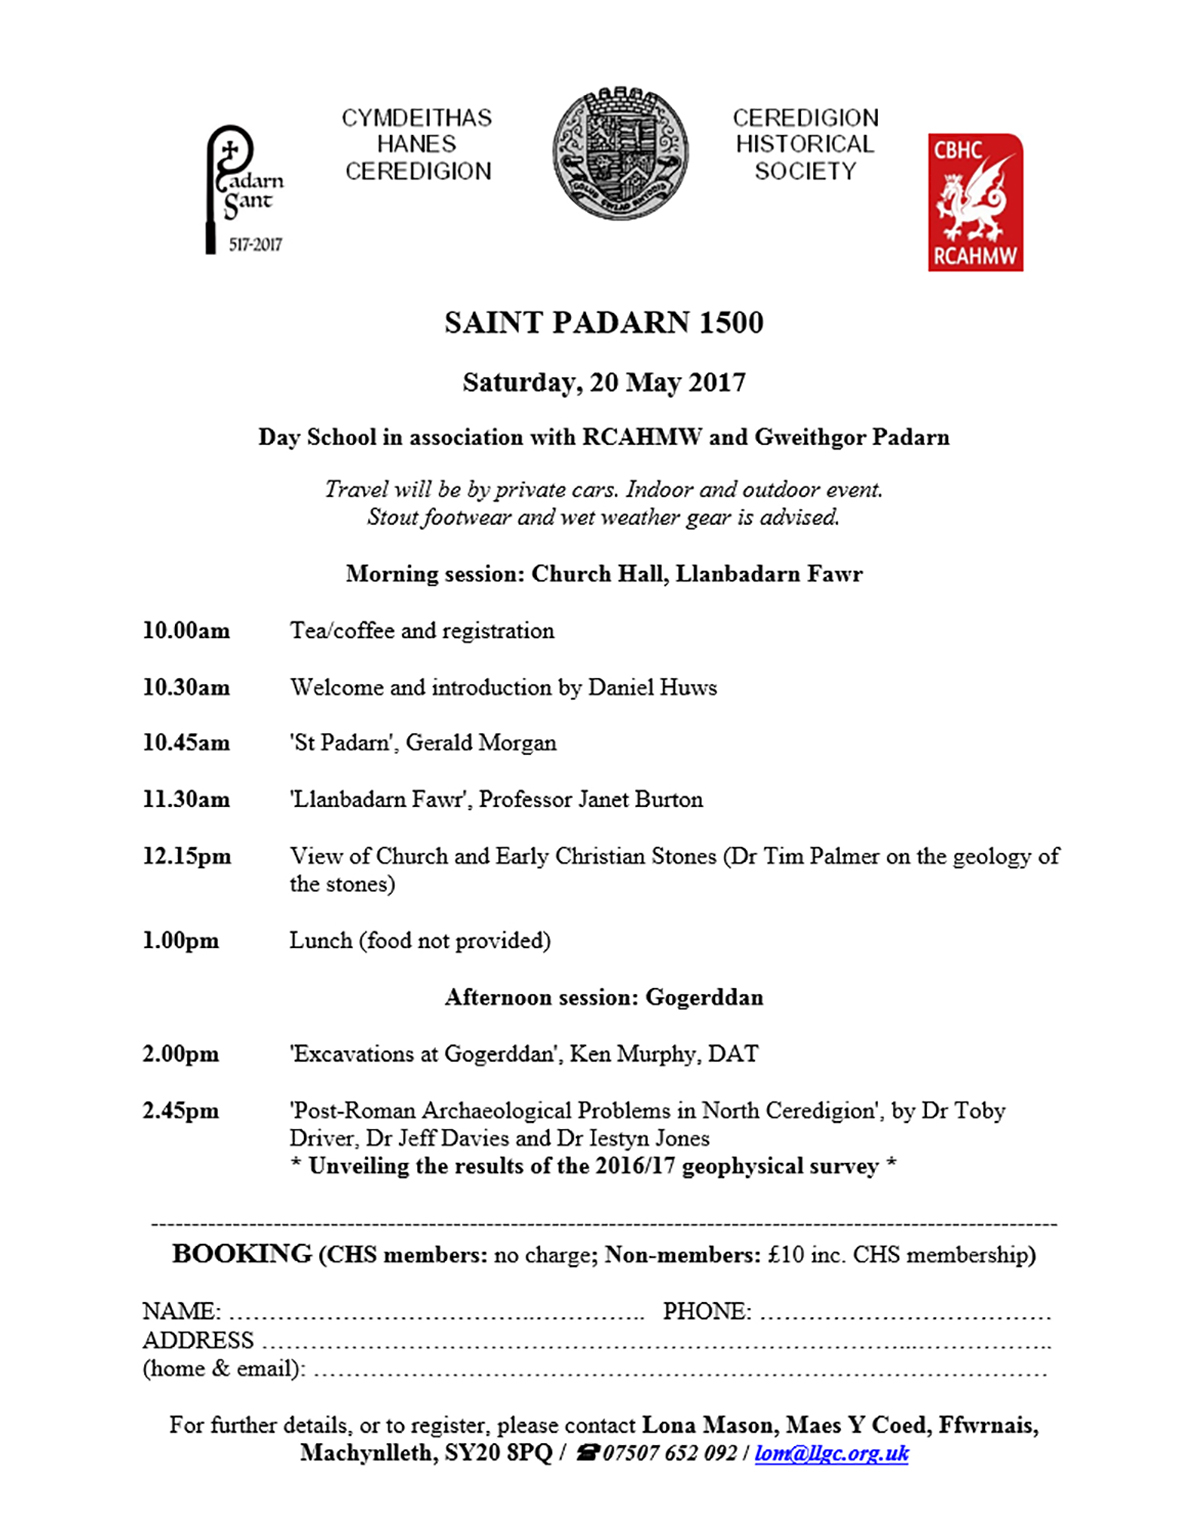 Saint Padarn 1500, Day School in association with RCAHMW and Gweithgor Padarn